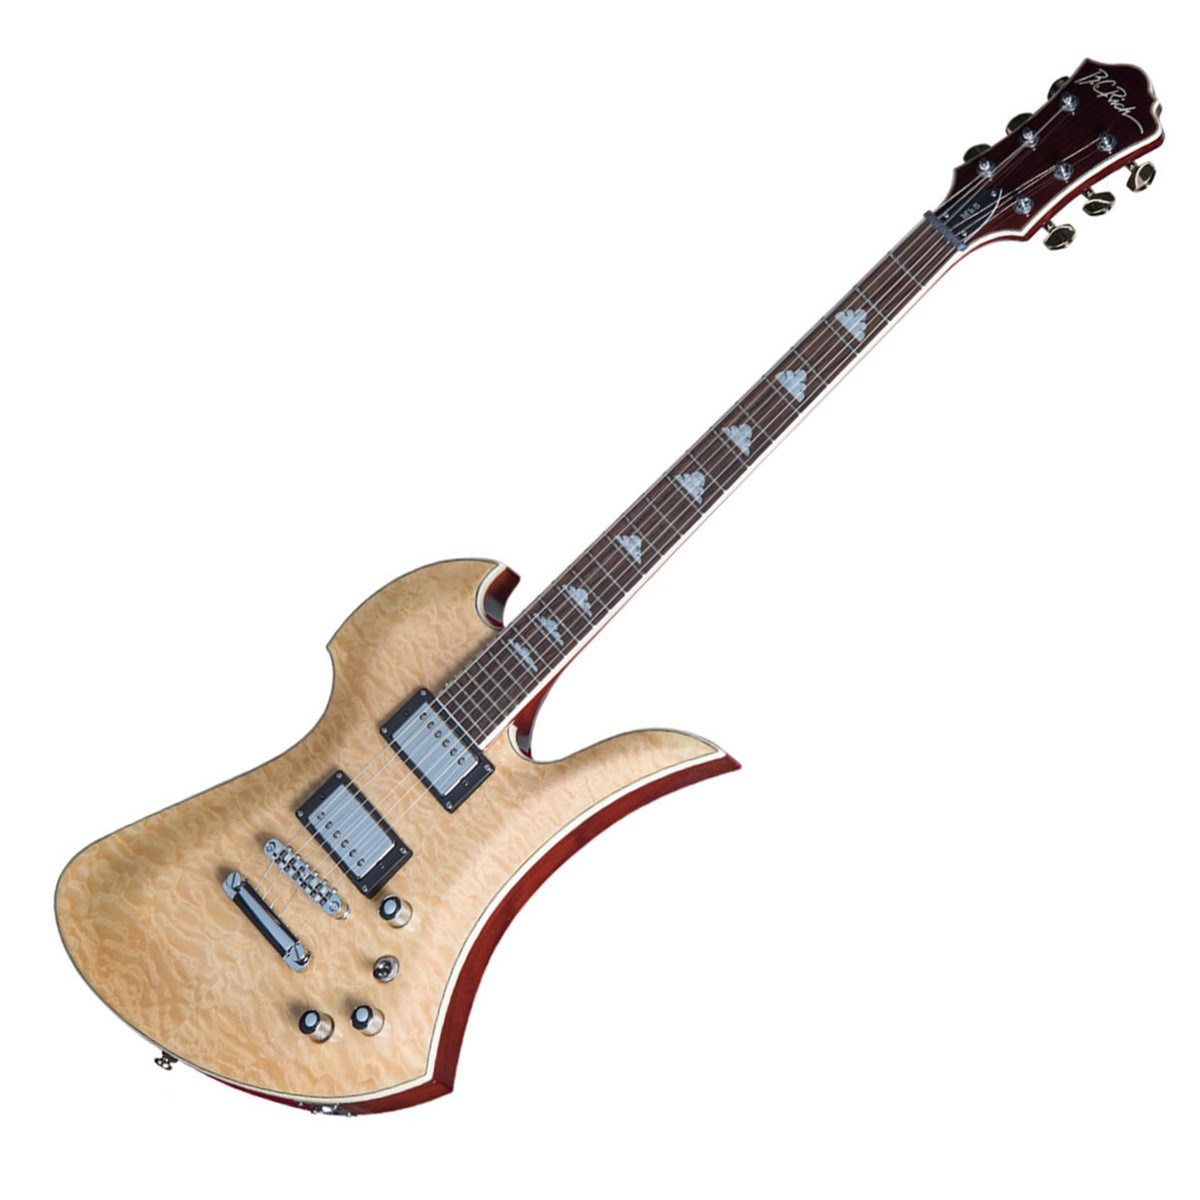 preview bc rich mockingbird mk5 electric guitar, natural at gear4music com bc rich eagle wiring diagram at crackthecode.co